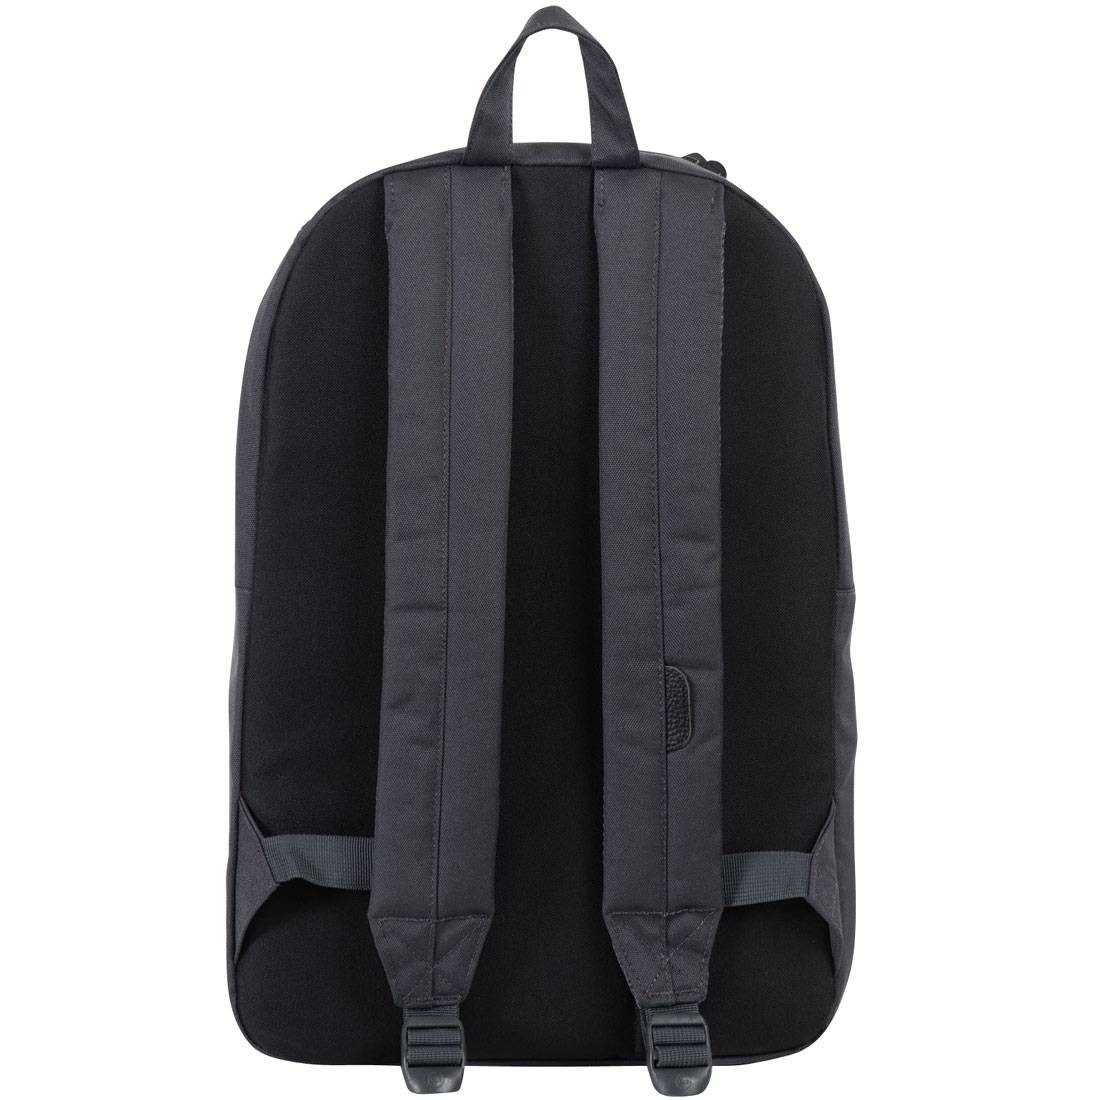 2d5dd84b57 Herschel Supply Co Heritage Backpack - Poly (black   dark shadow)